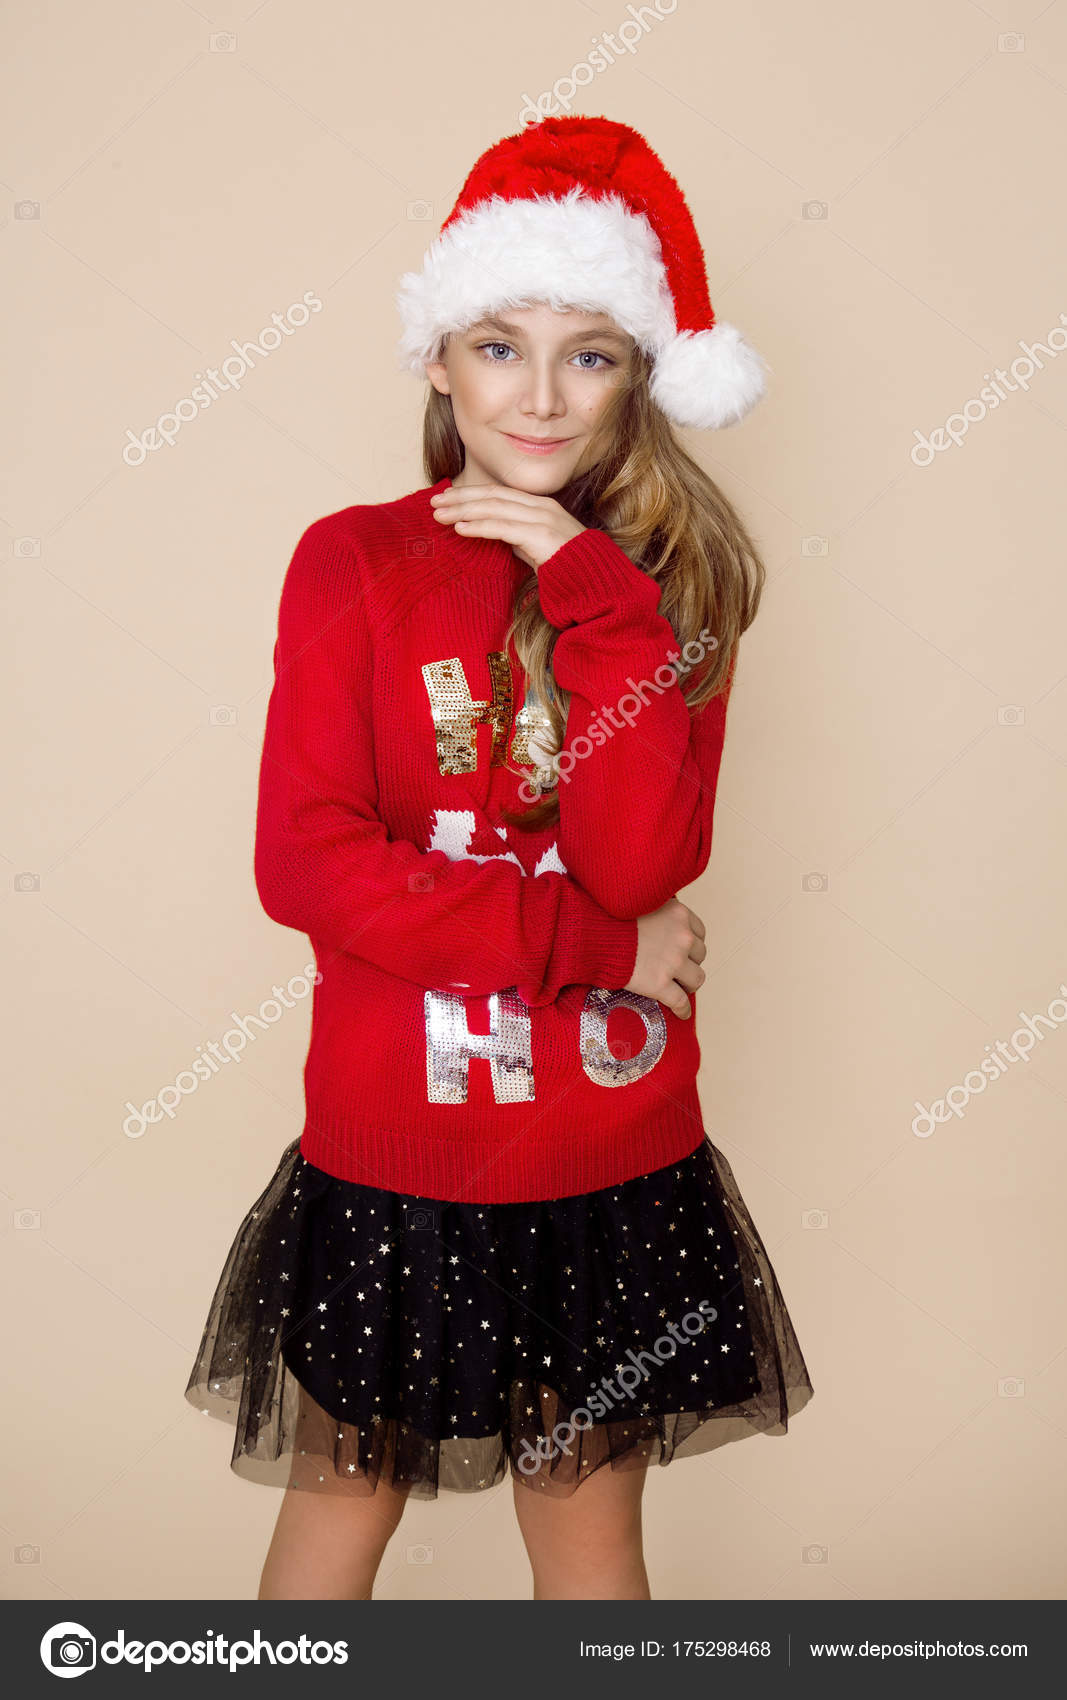 33267ee26765 Beautiful Cute Little Girl Wearing Red Christmas Sweater Red Cap– stock  image